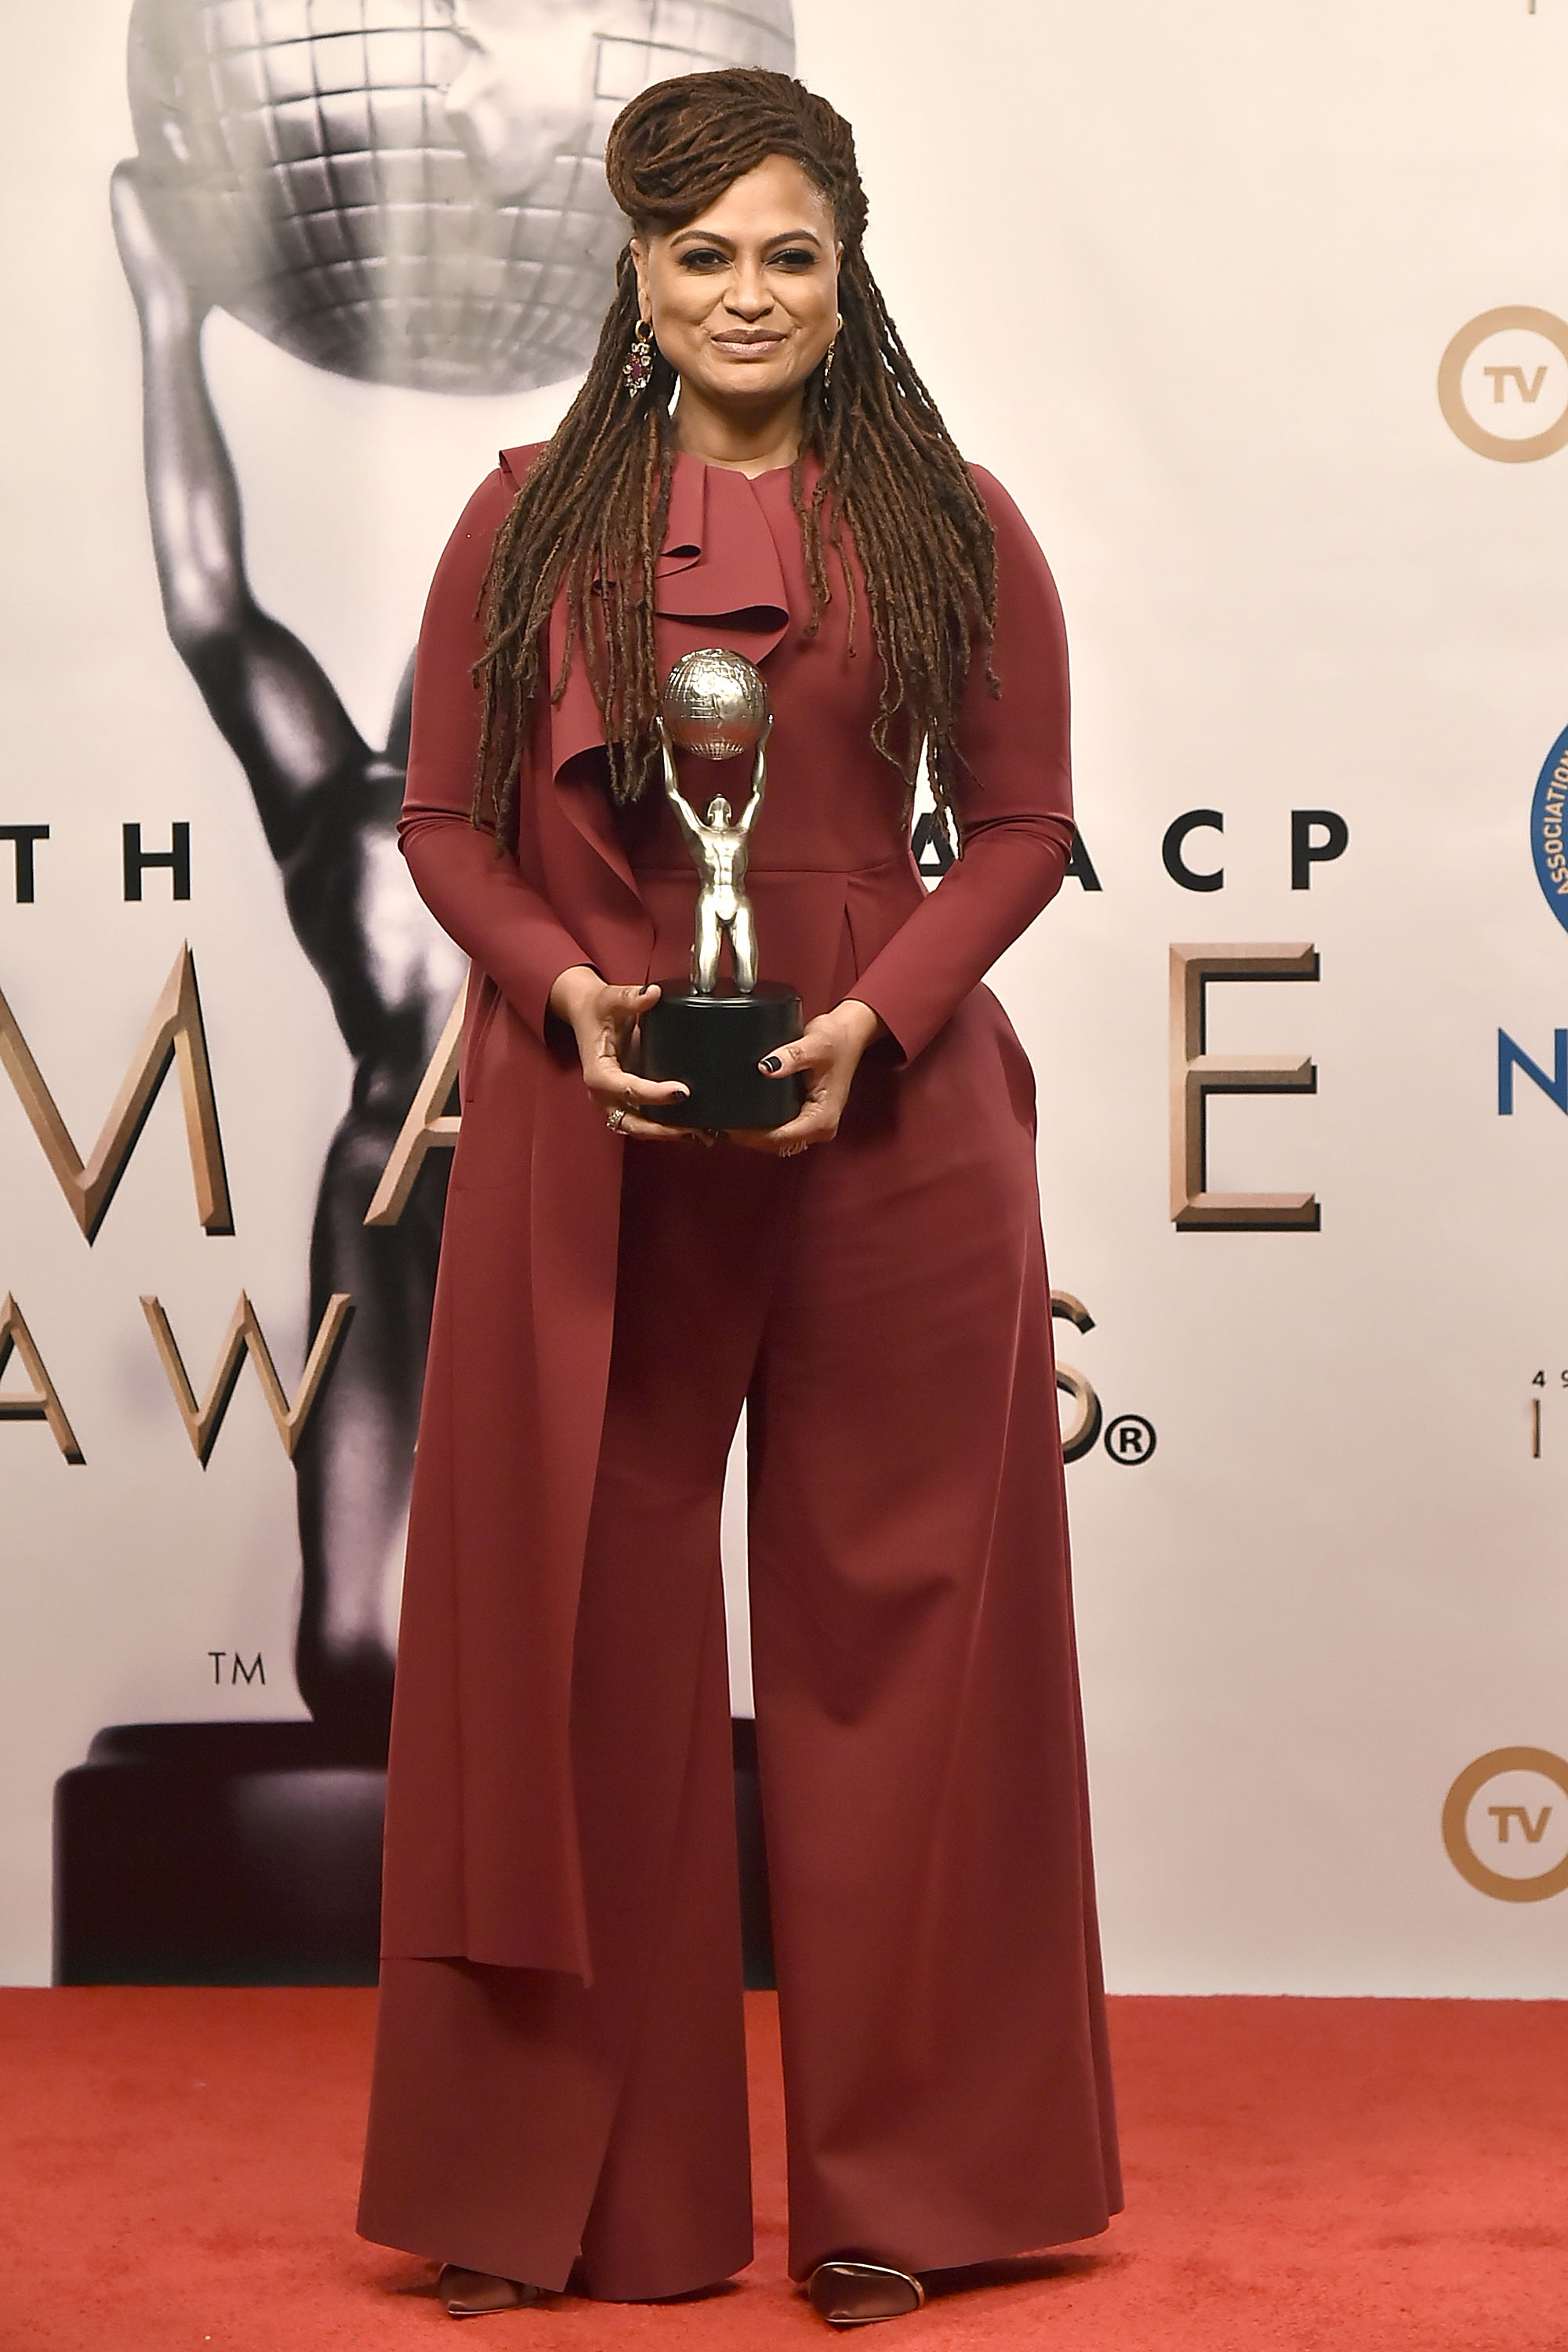 49th-NAACP-Image-Awards-All-The-Moments-You-May-Have-Missed